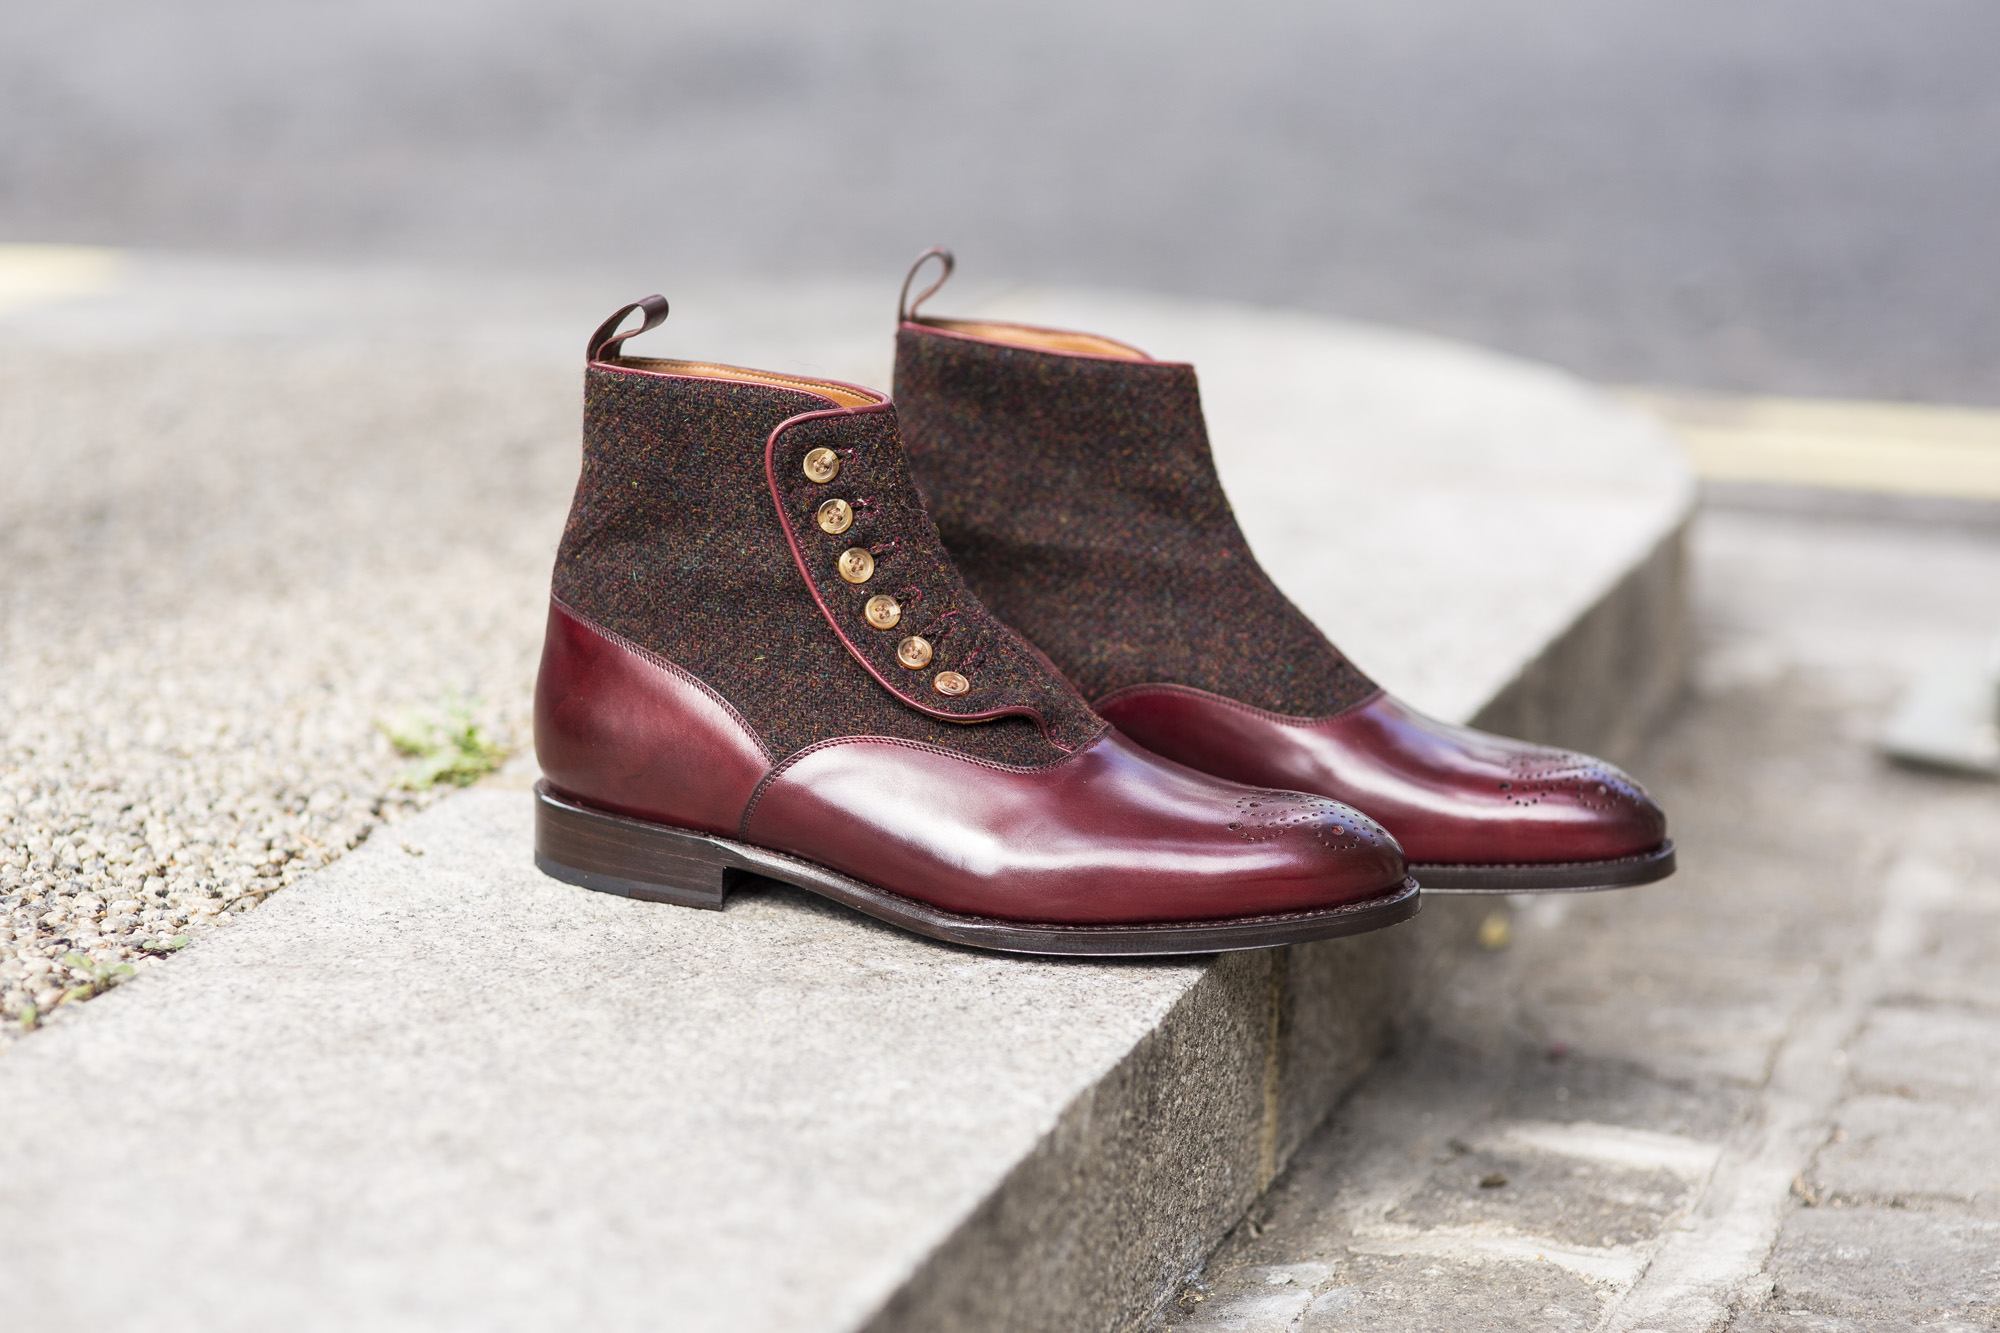 j-fitzpatrick-footwear-collection-august-16-2016-hero-40